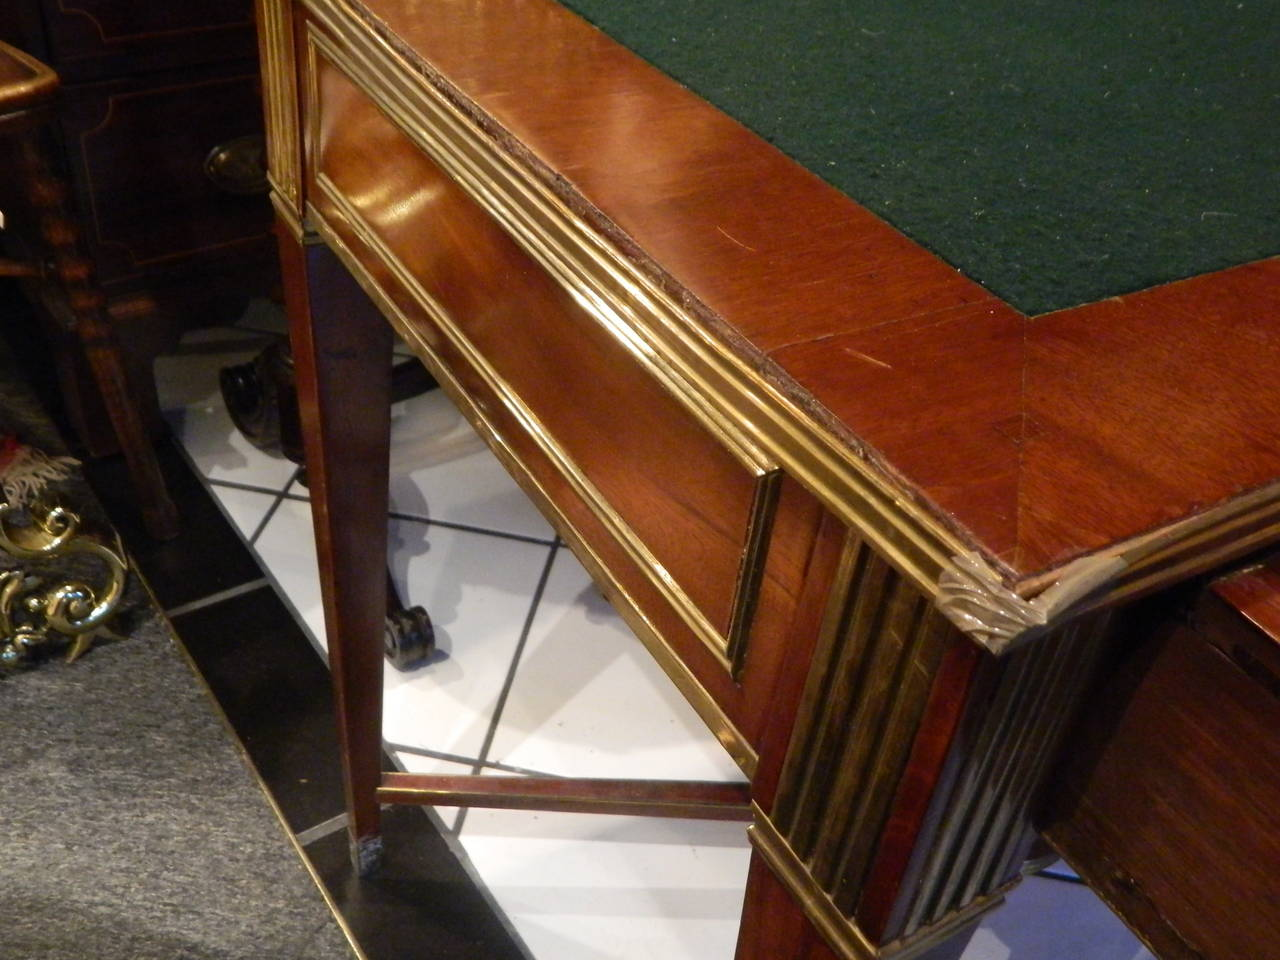 Russian Brass Mounted Mahogany Writing Table or Desk, 19th Century For Sale 7